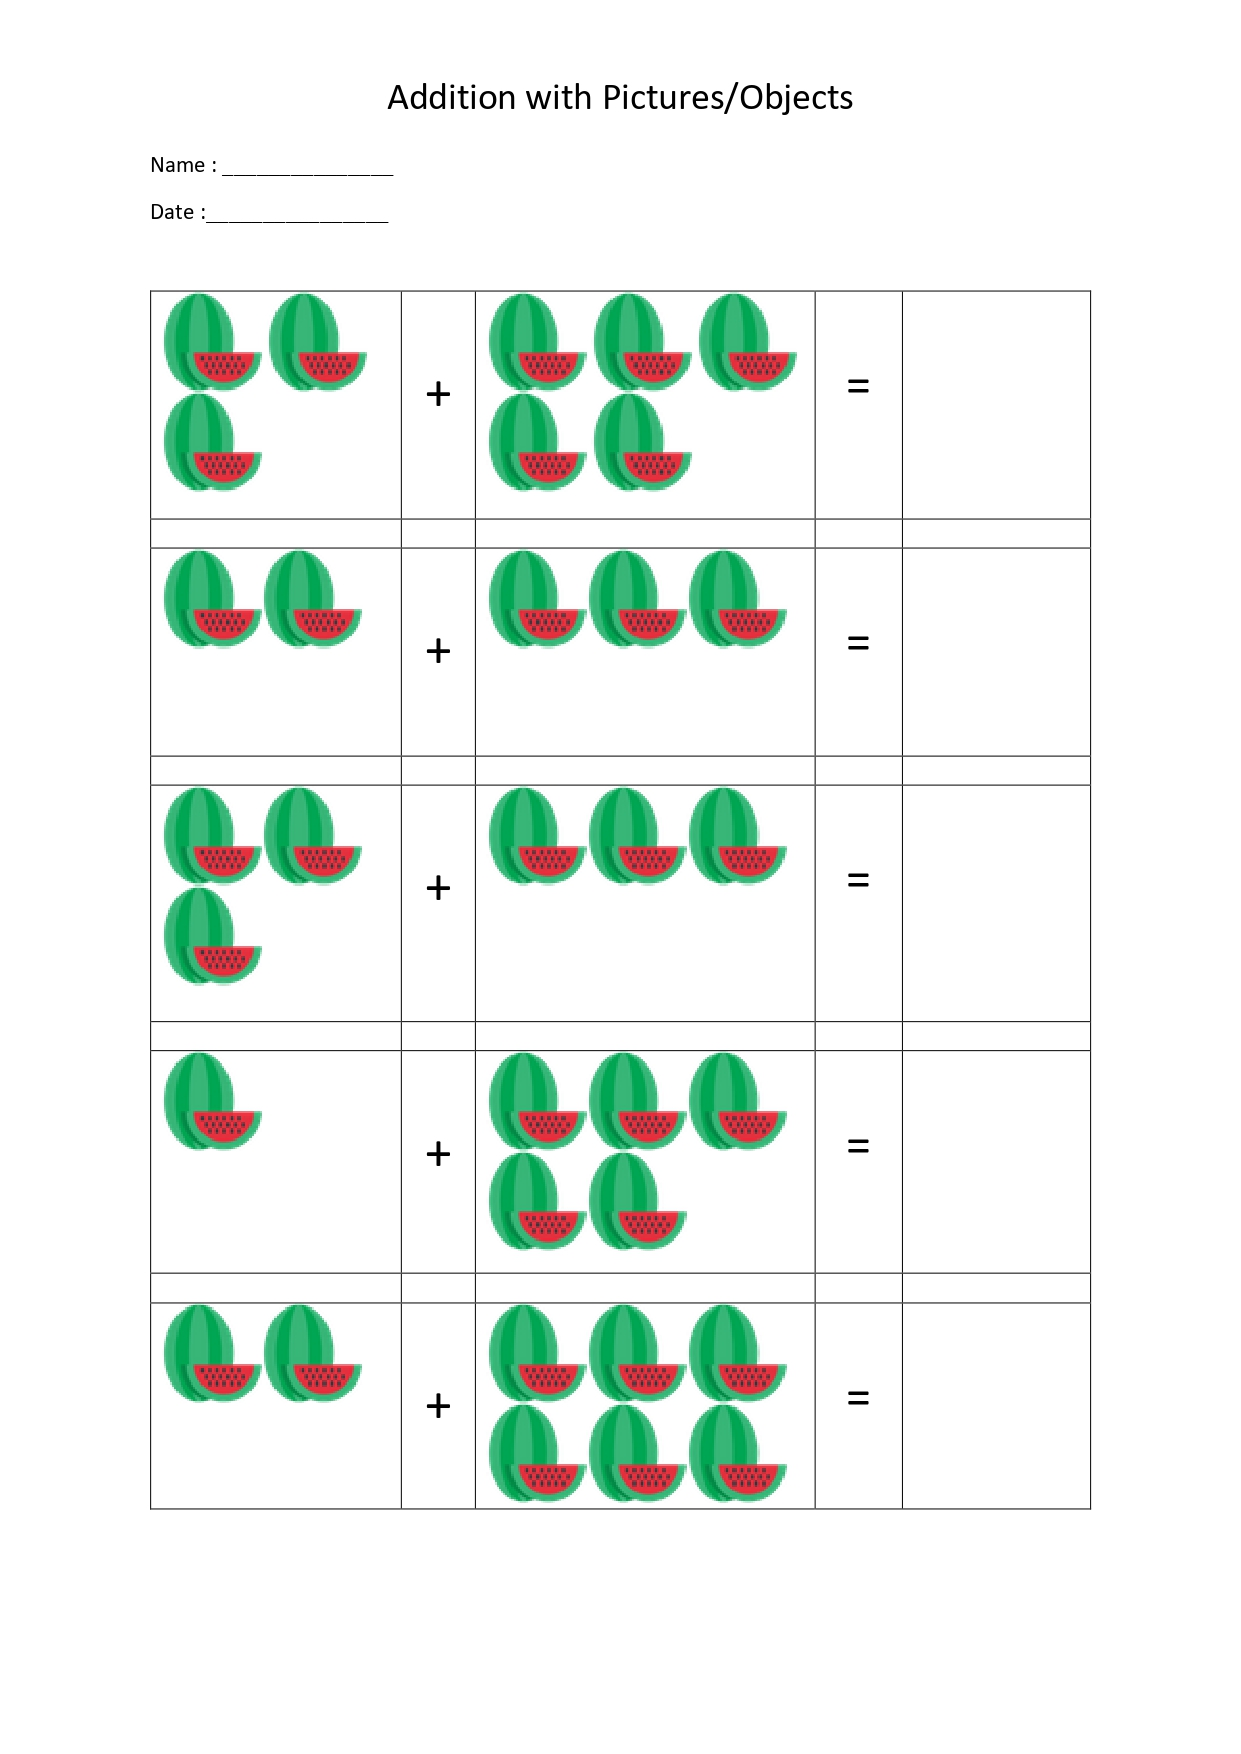 20 Sheets Math Addition Worksheets With Pictures For